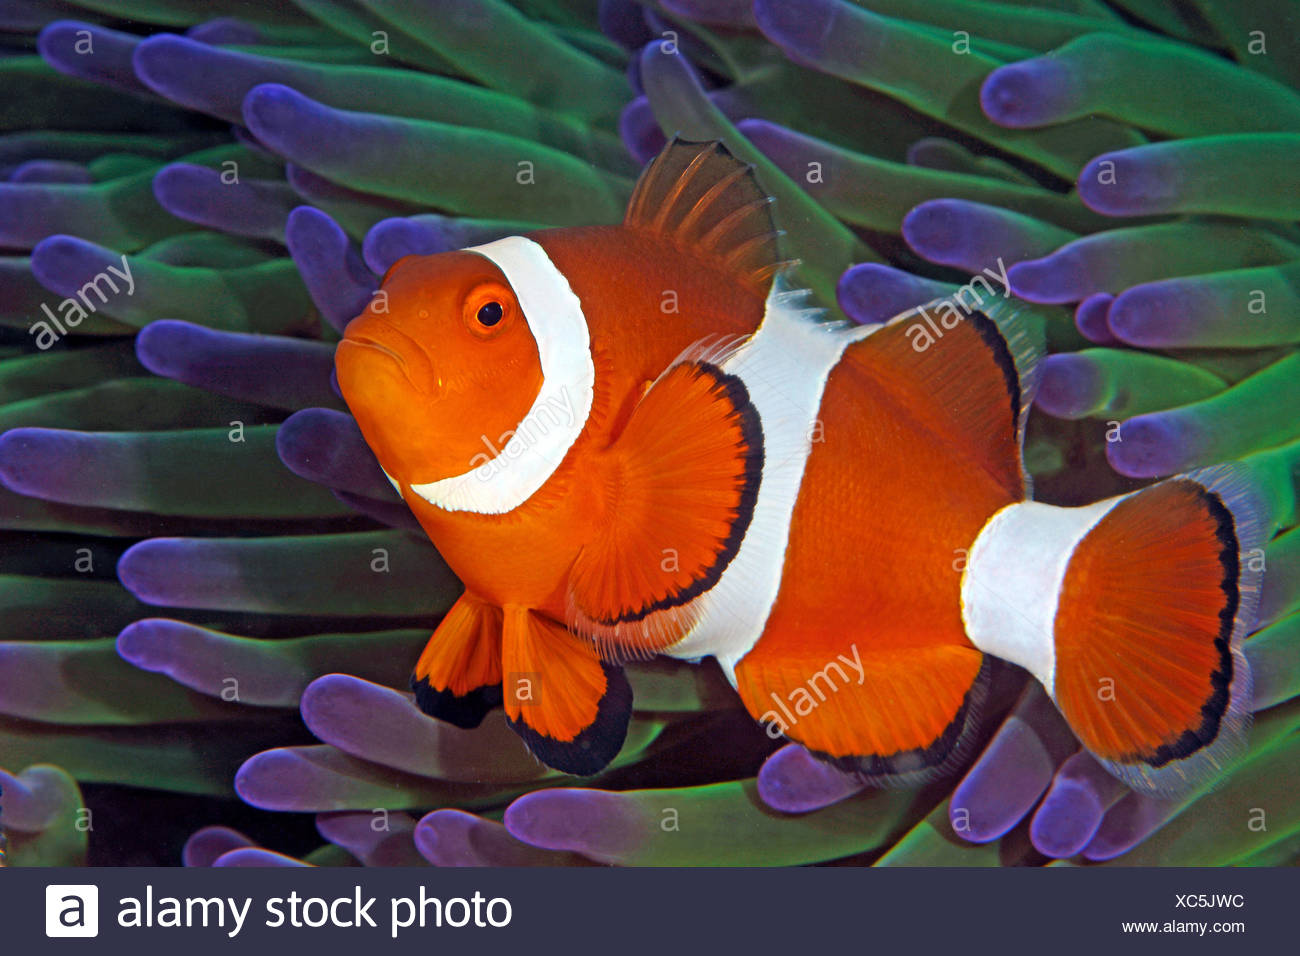 Magnificent Sea Anemone And Clownfish Stock Photos & Magnificent Sea ...